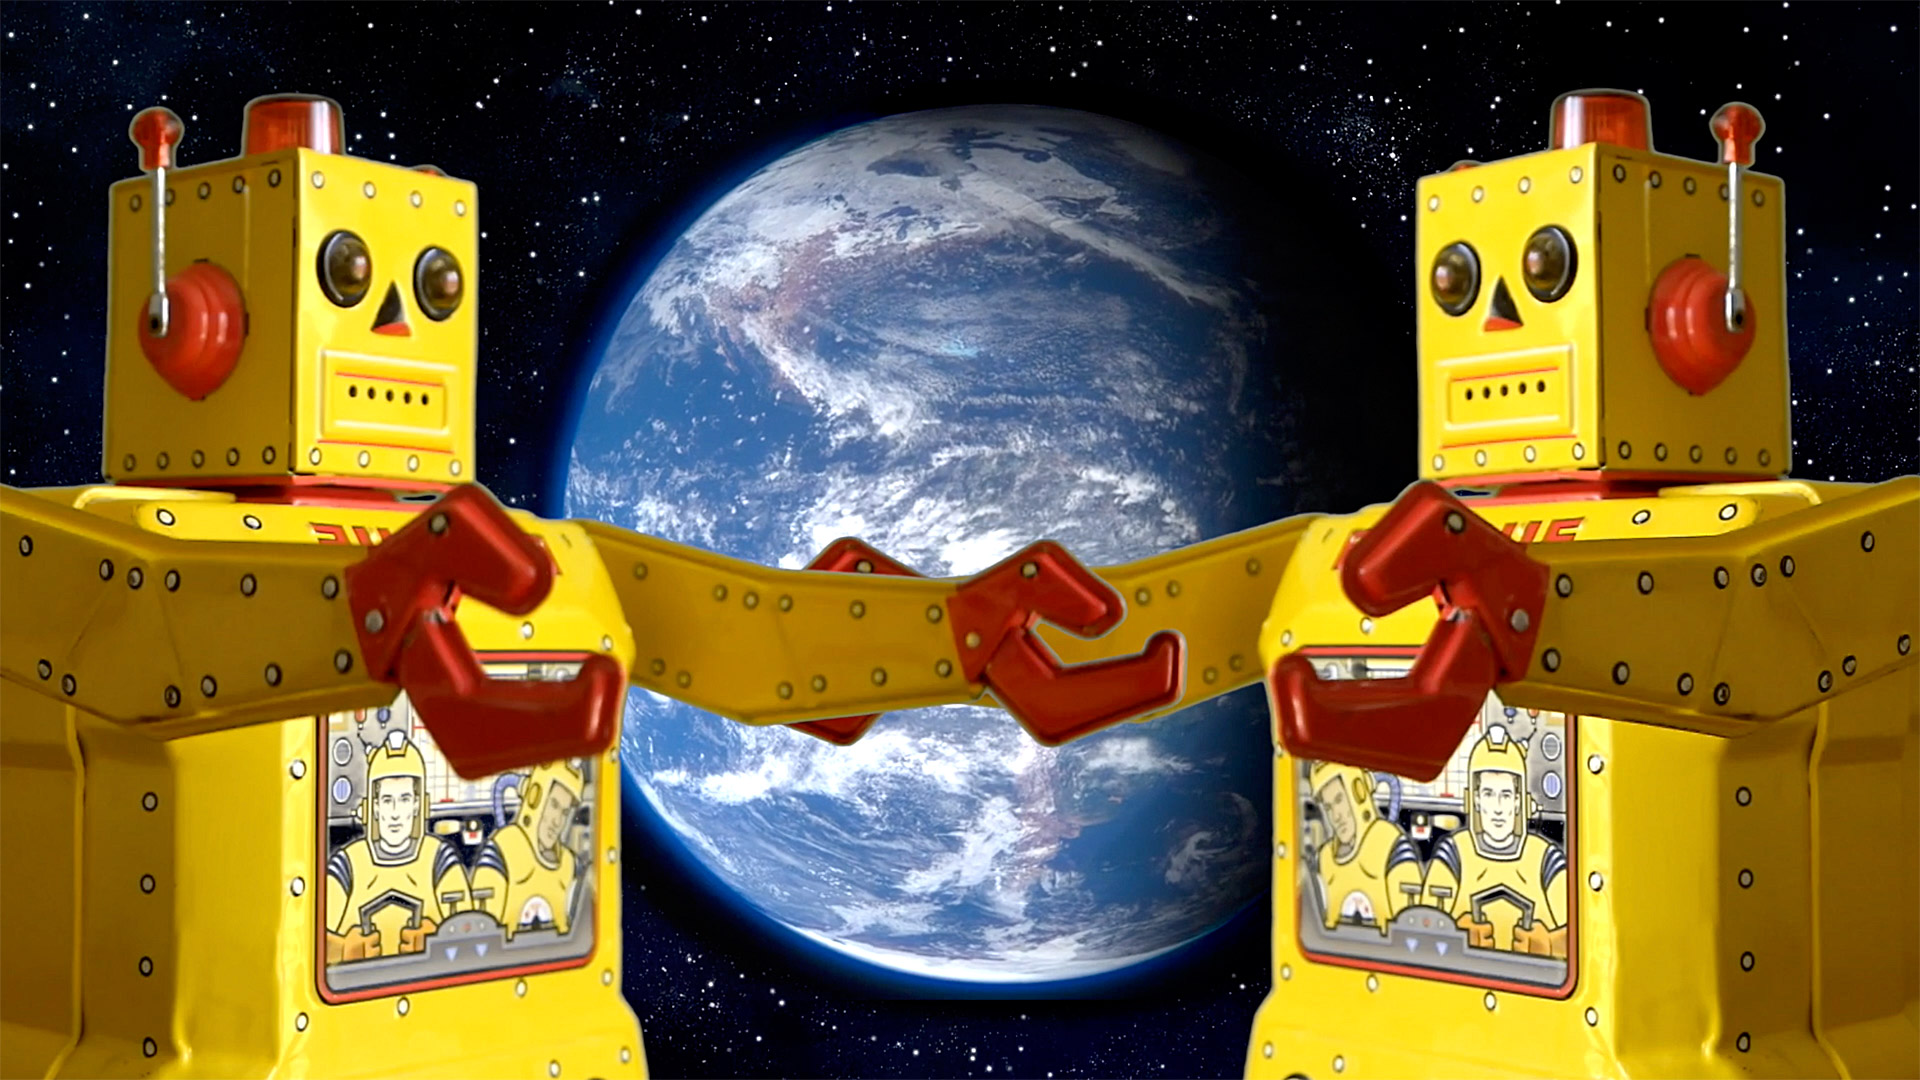 We are the Robot Space Explorers